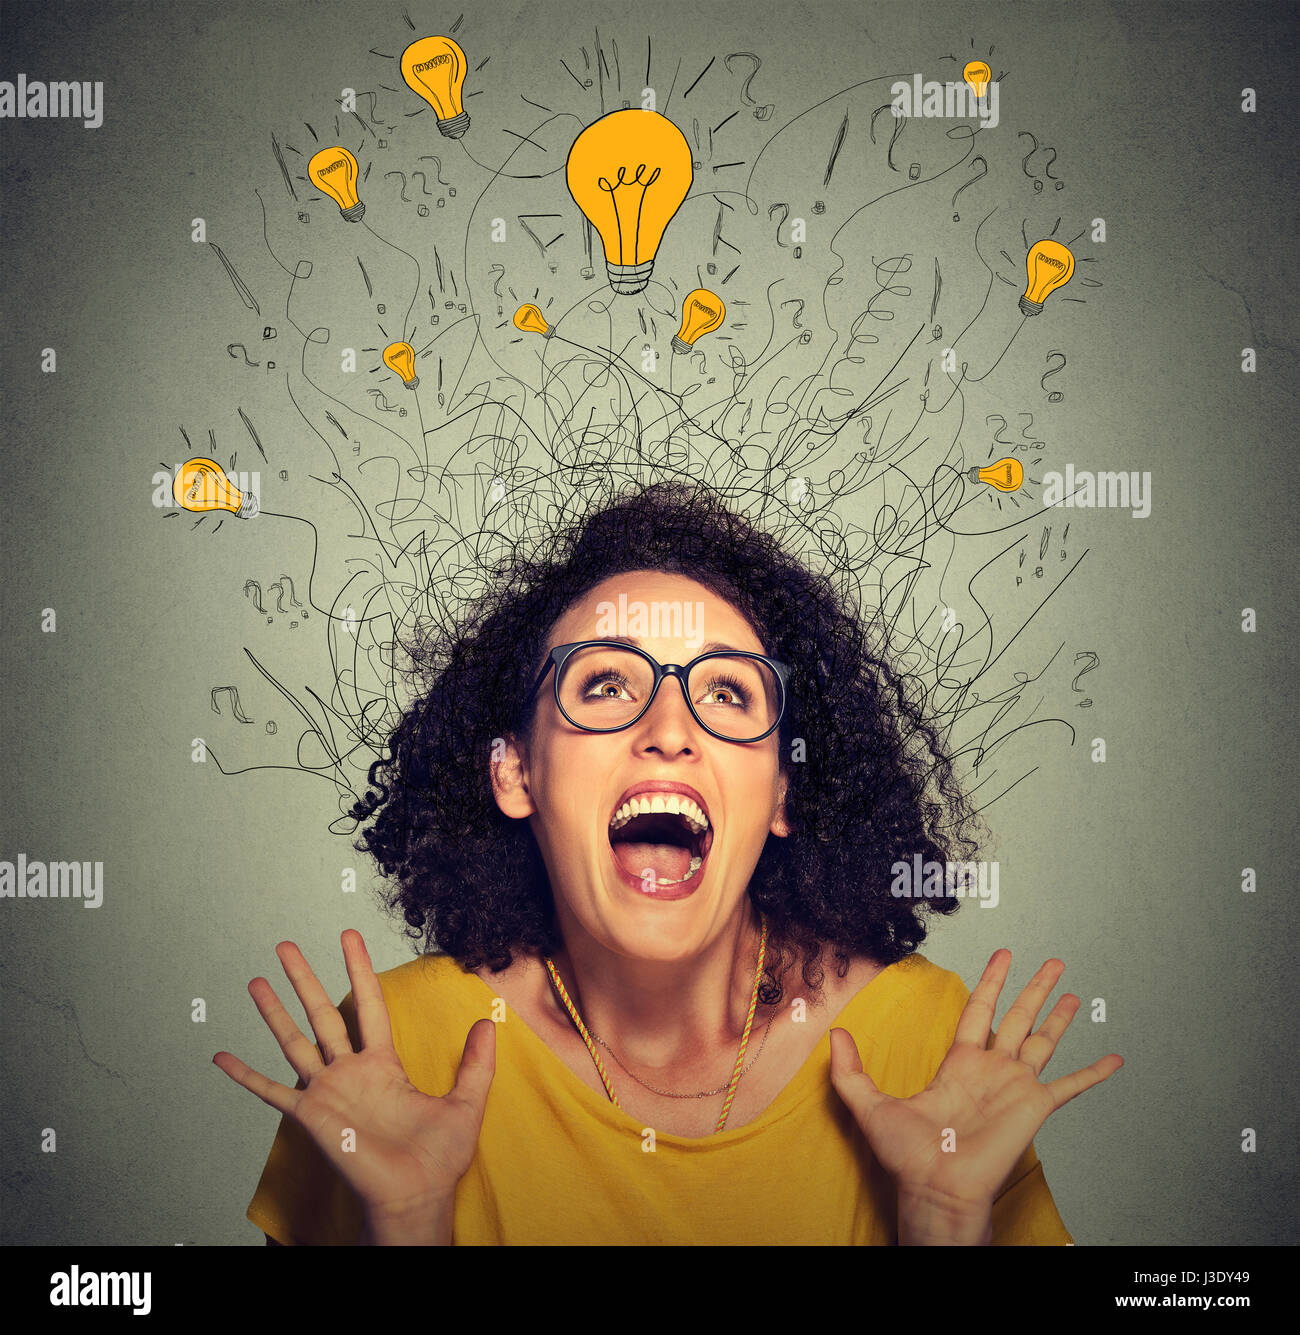 Closeup super excited happy screaming woman with many light idea bulbs above head celebrates success looking up - Stock Image